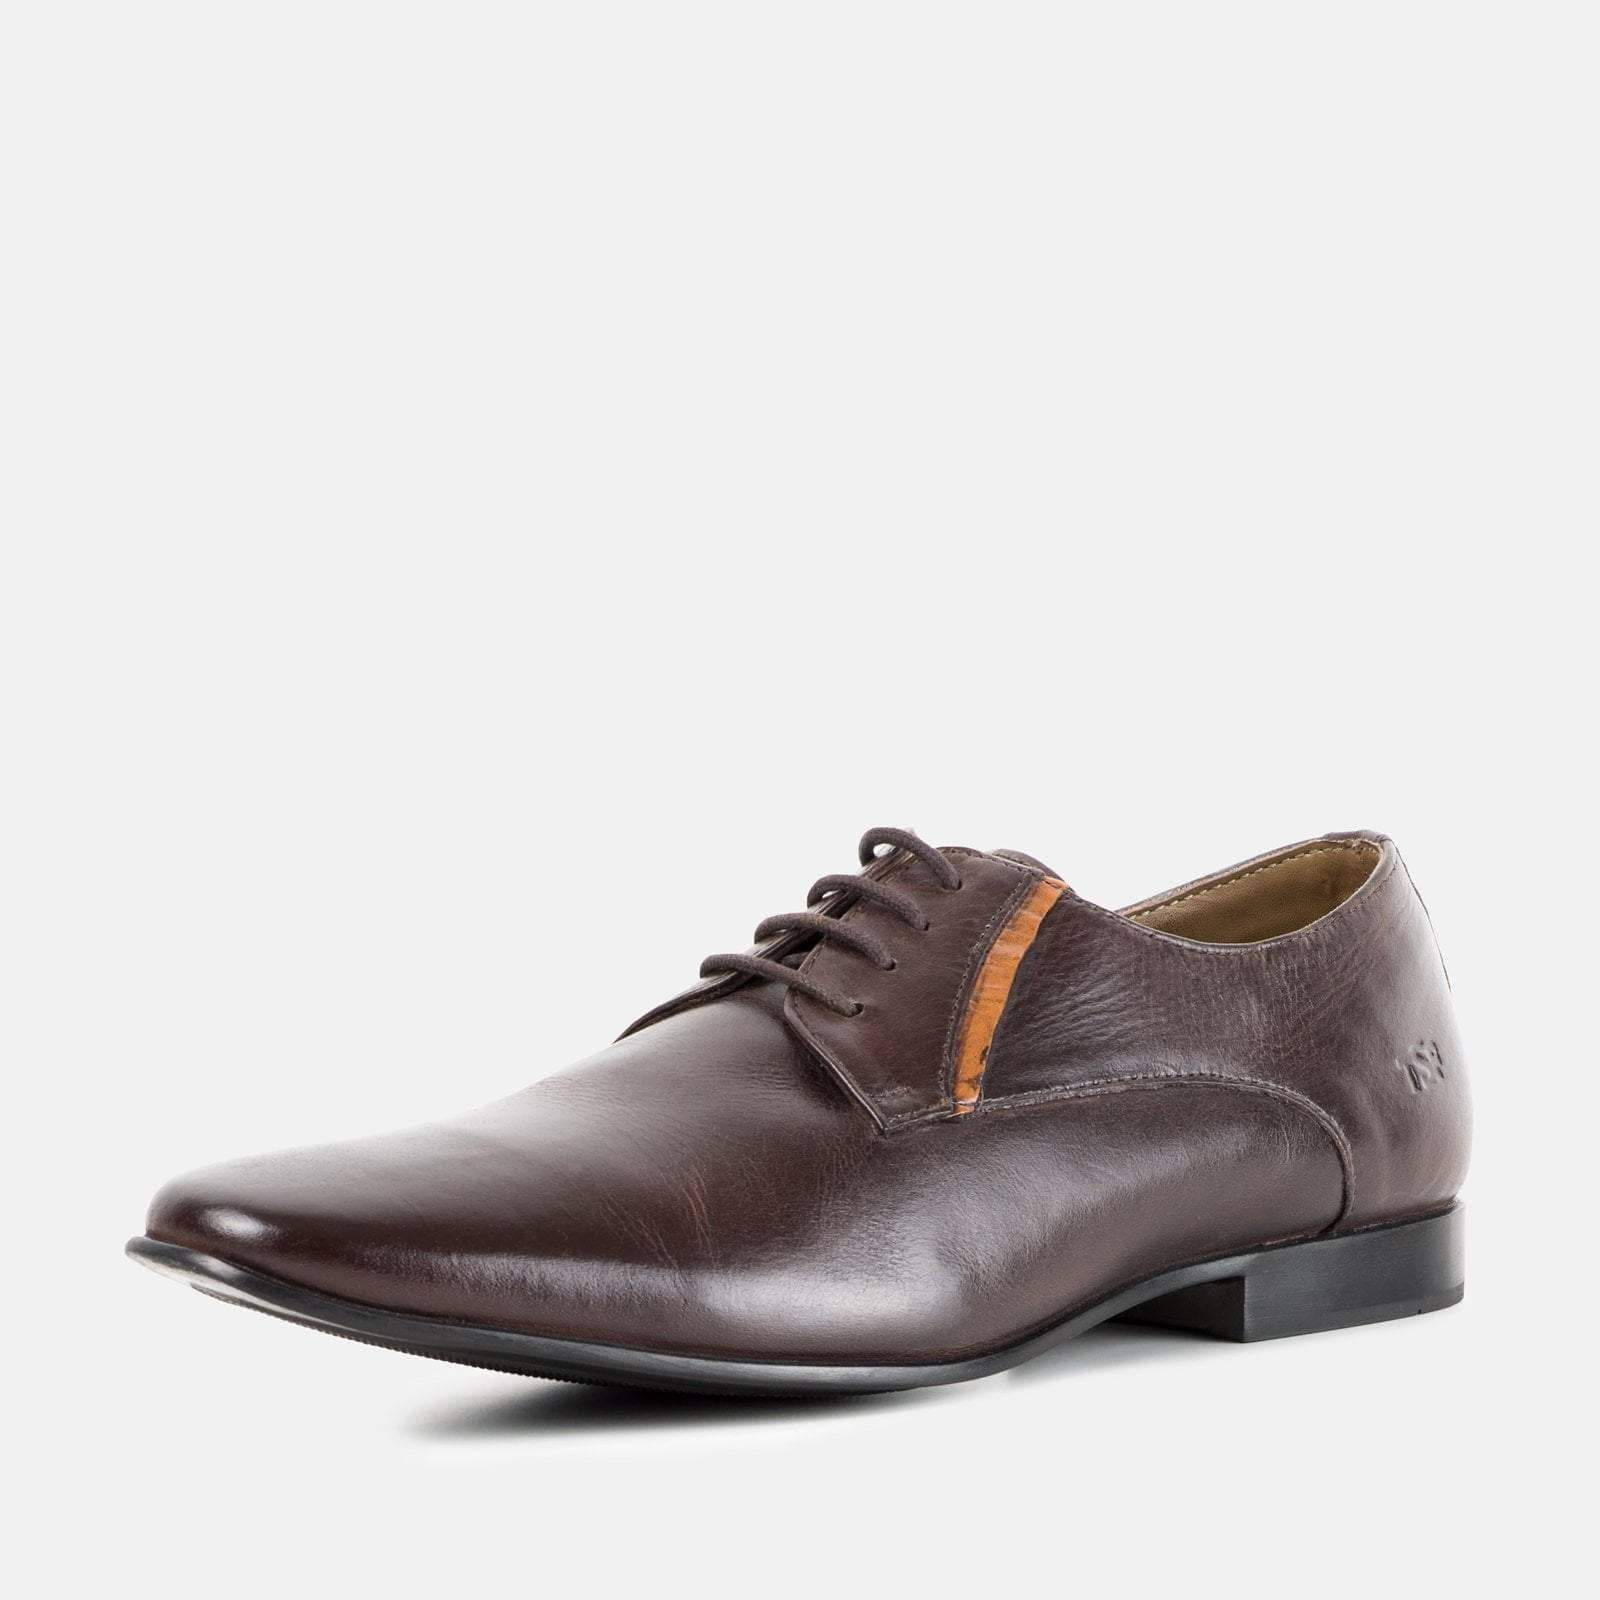 Redfoot Footwear BOND BROWN LEATHER DERBY SHOE